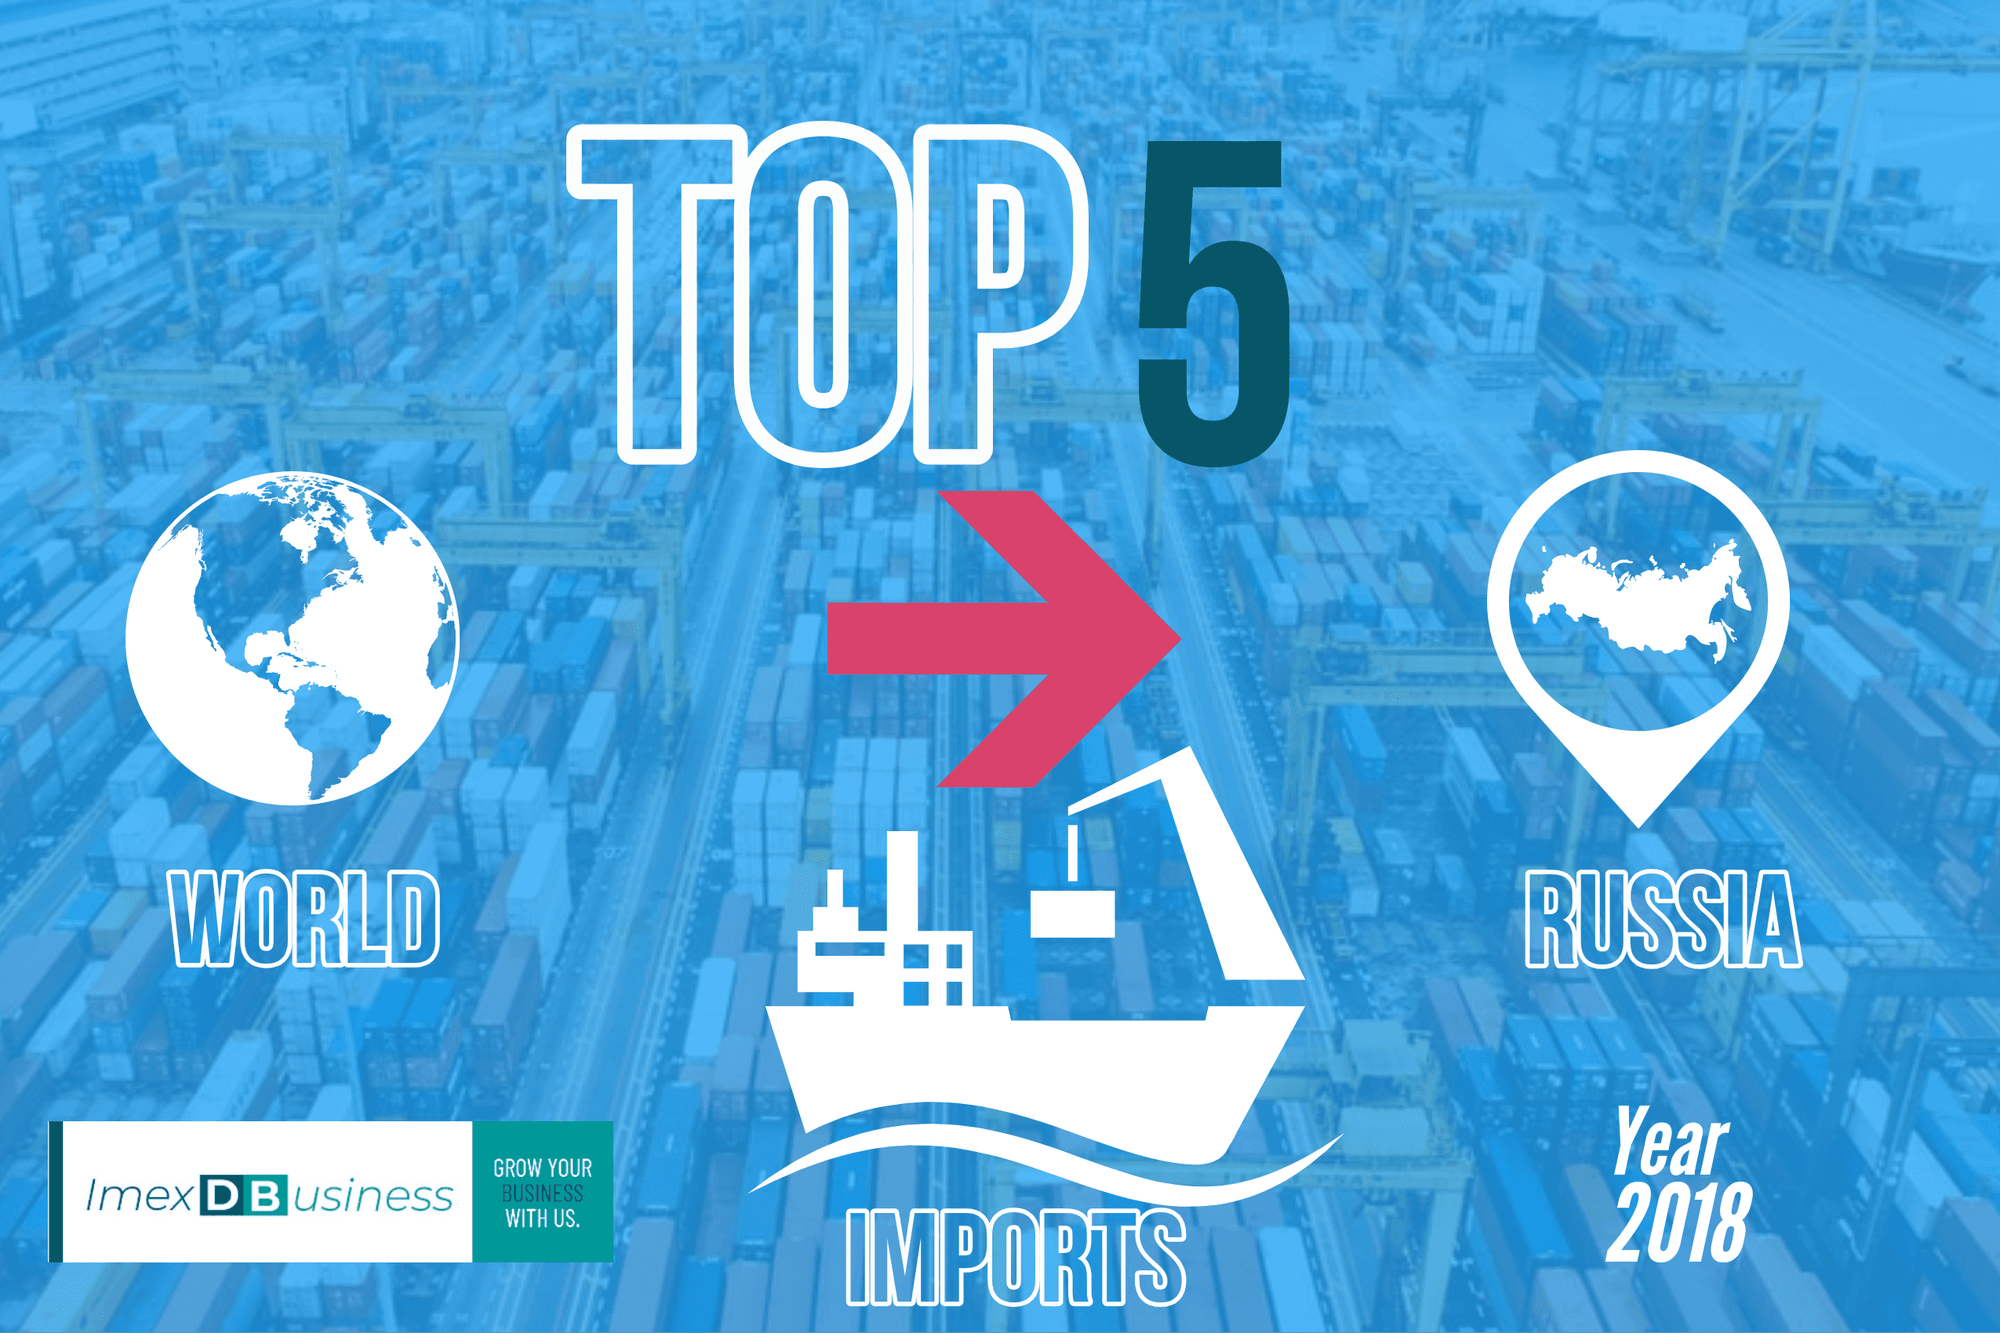 Top 5 imports Russia year 2018!